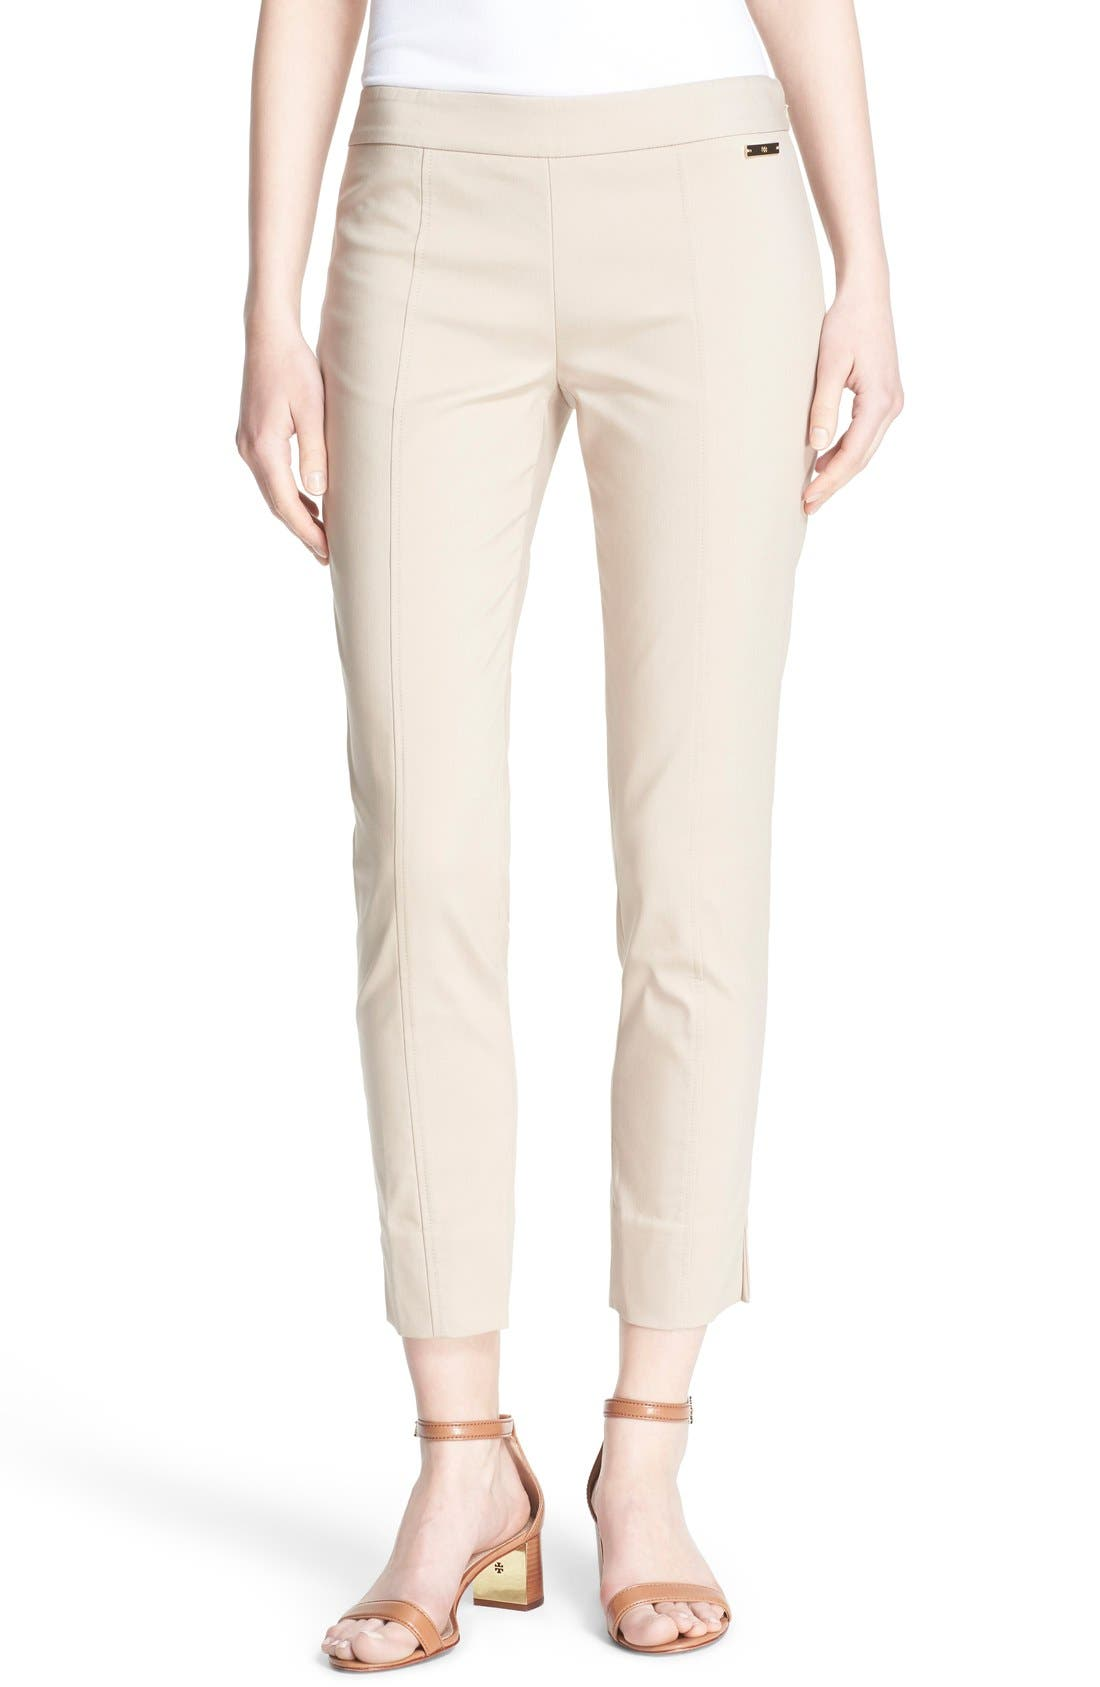 Tory Burch 'Callie' Seamed Crop Pants